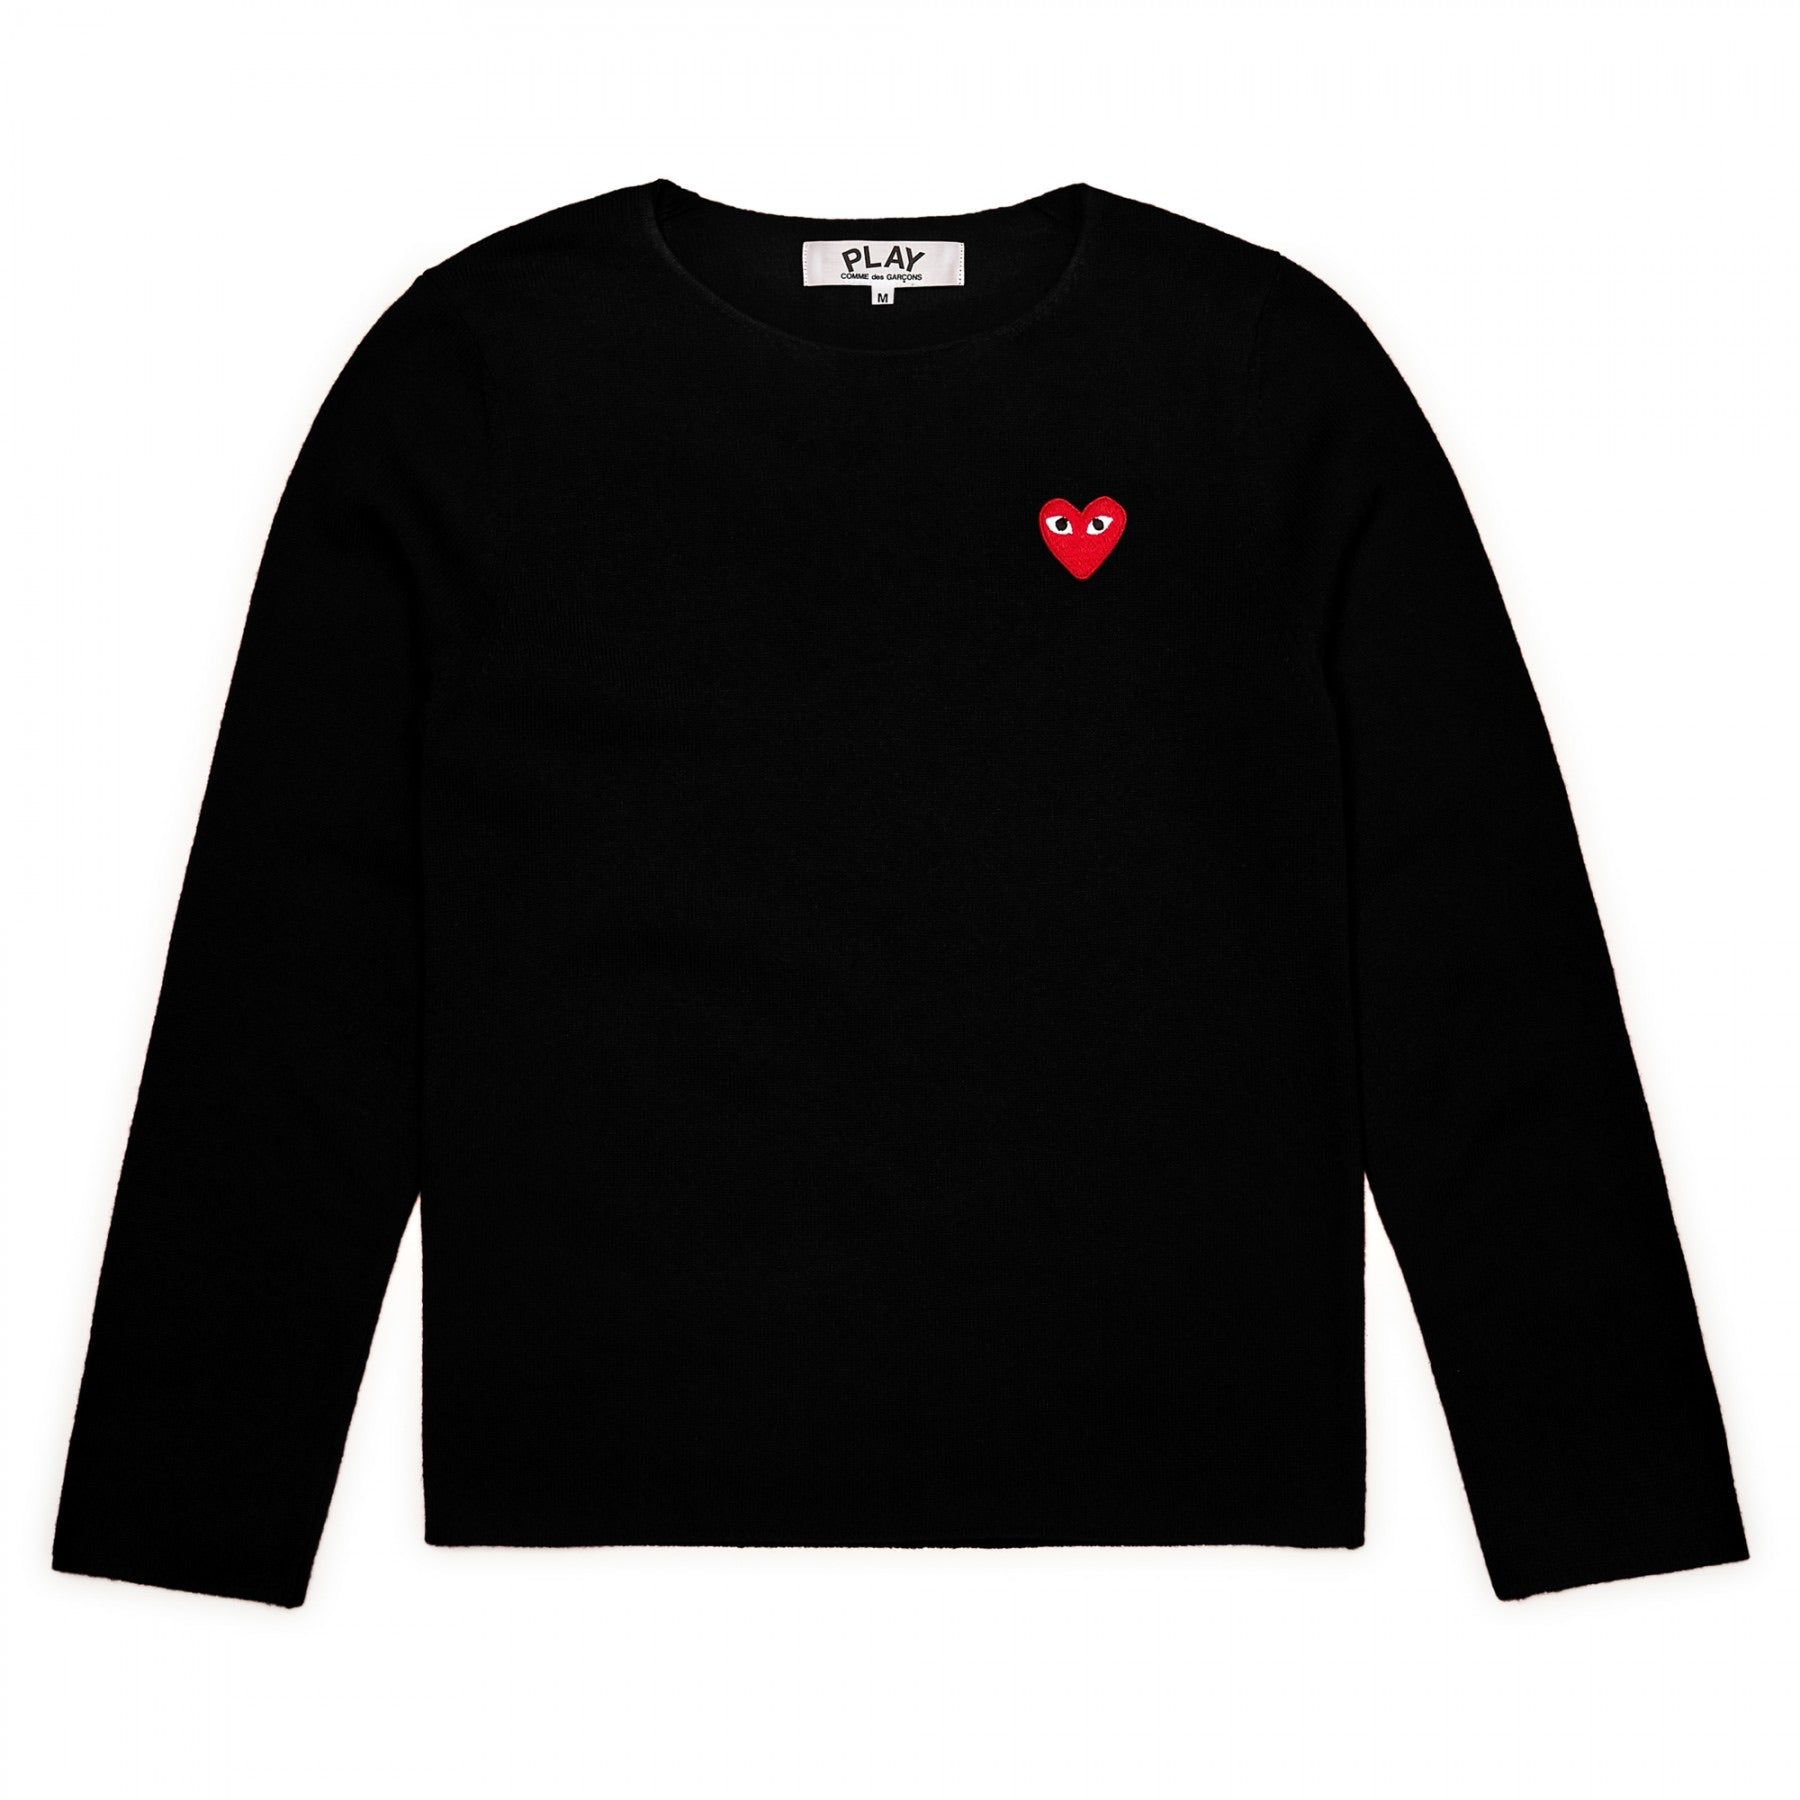 Knit lambswool Heart Crewneck Black/Red